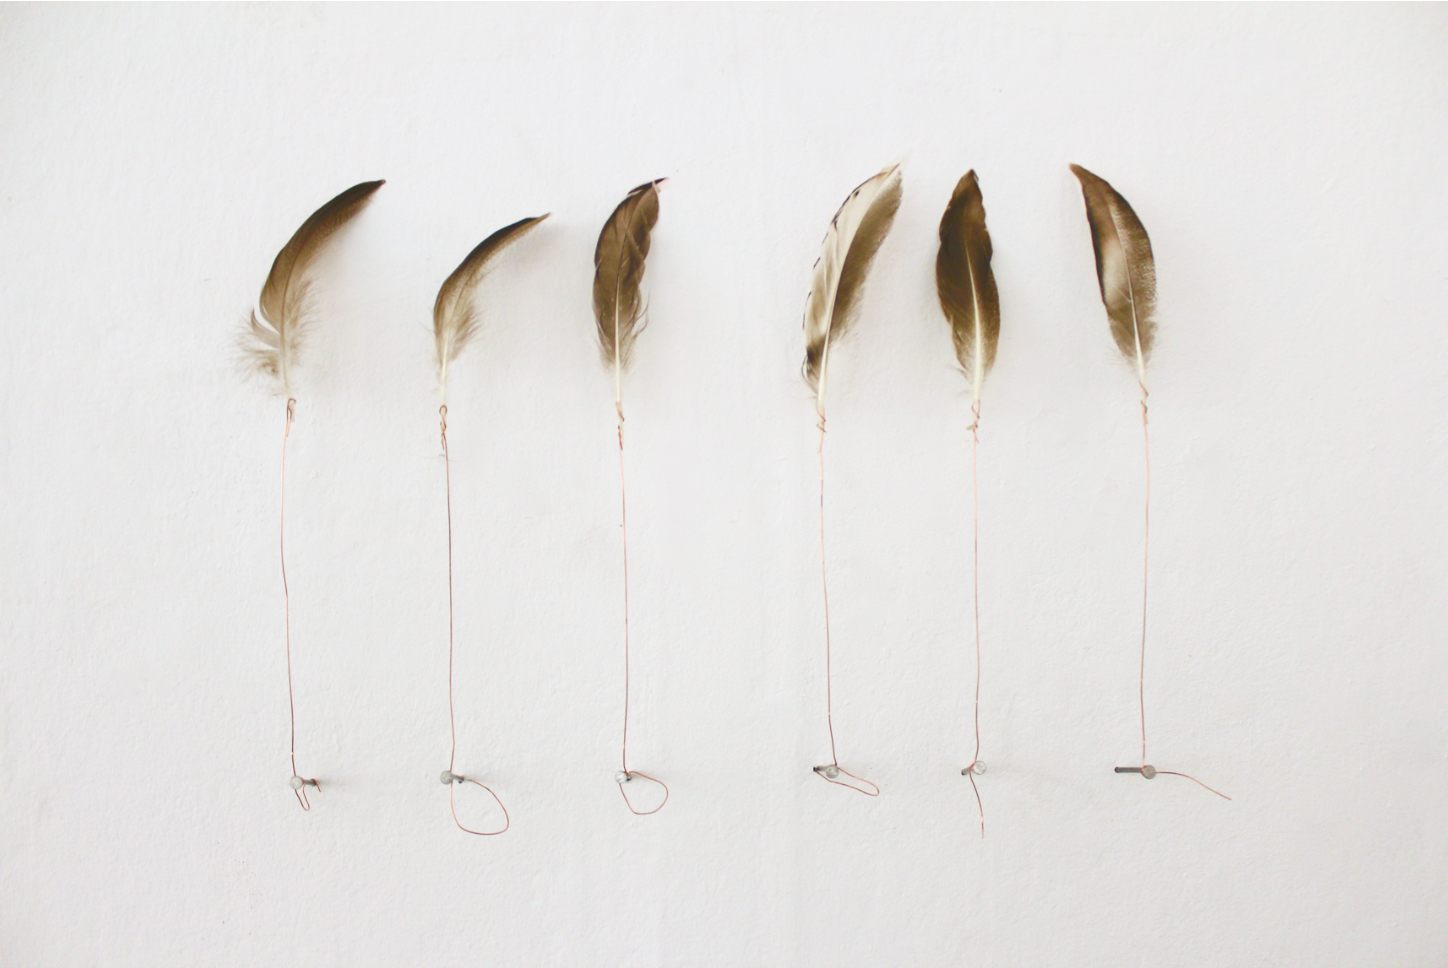 R.FUERST_MONUMENTS_FEATHERS*